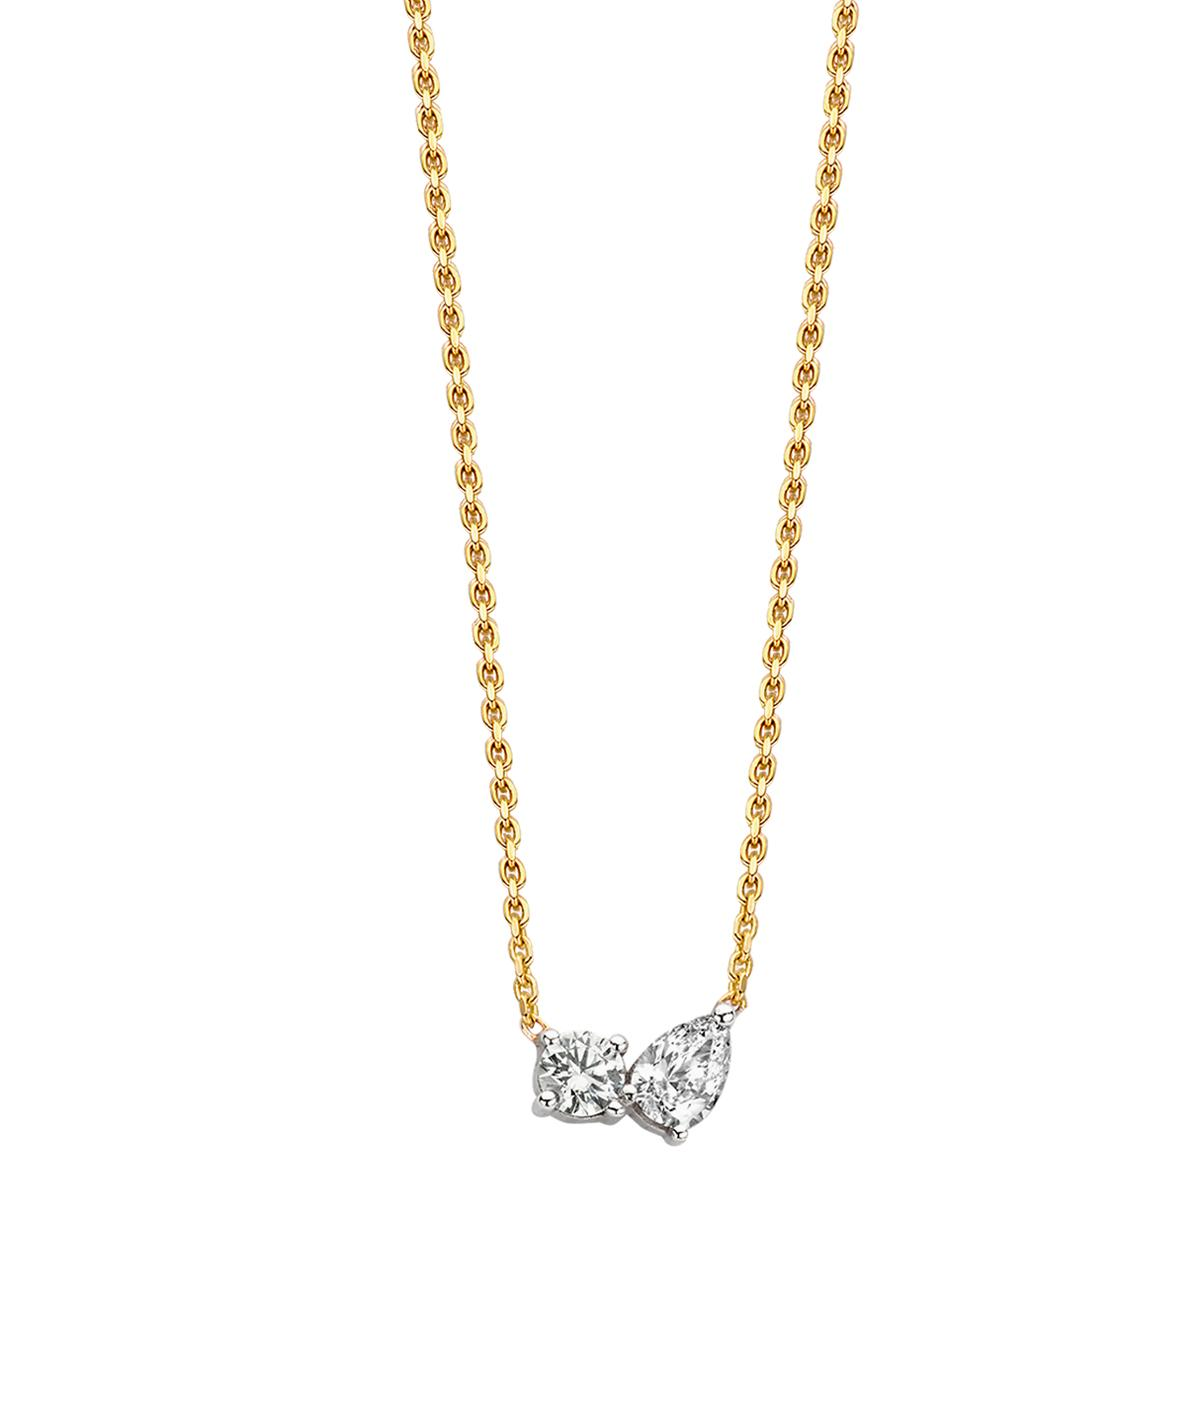 gold chain with pear cut diamonds on